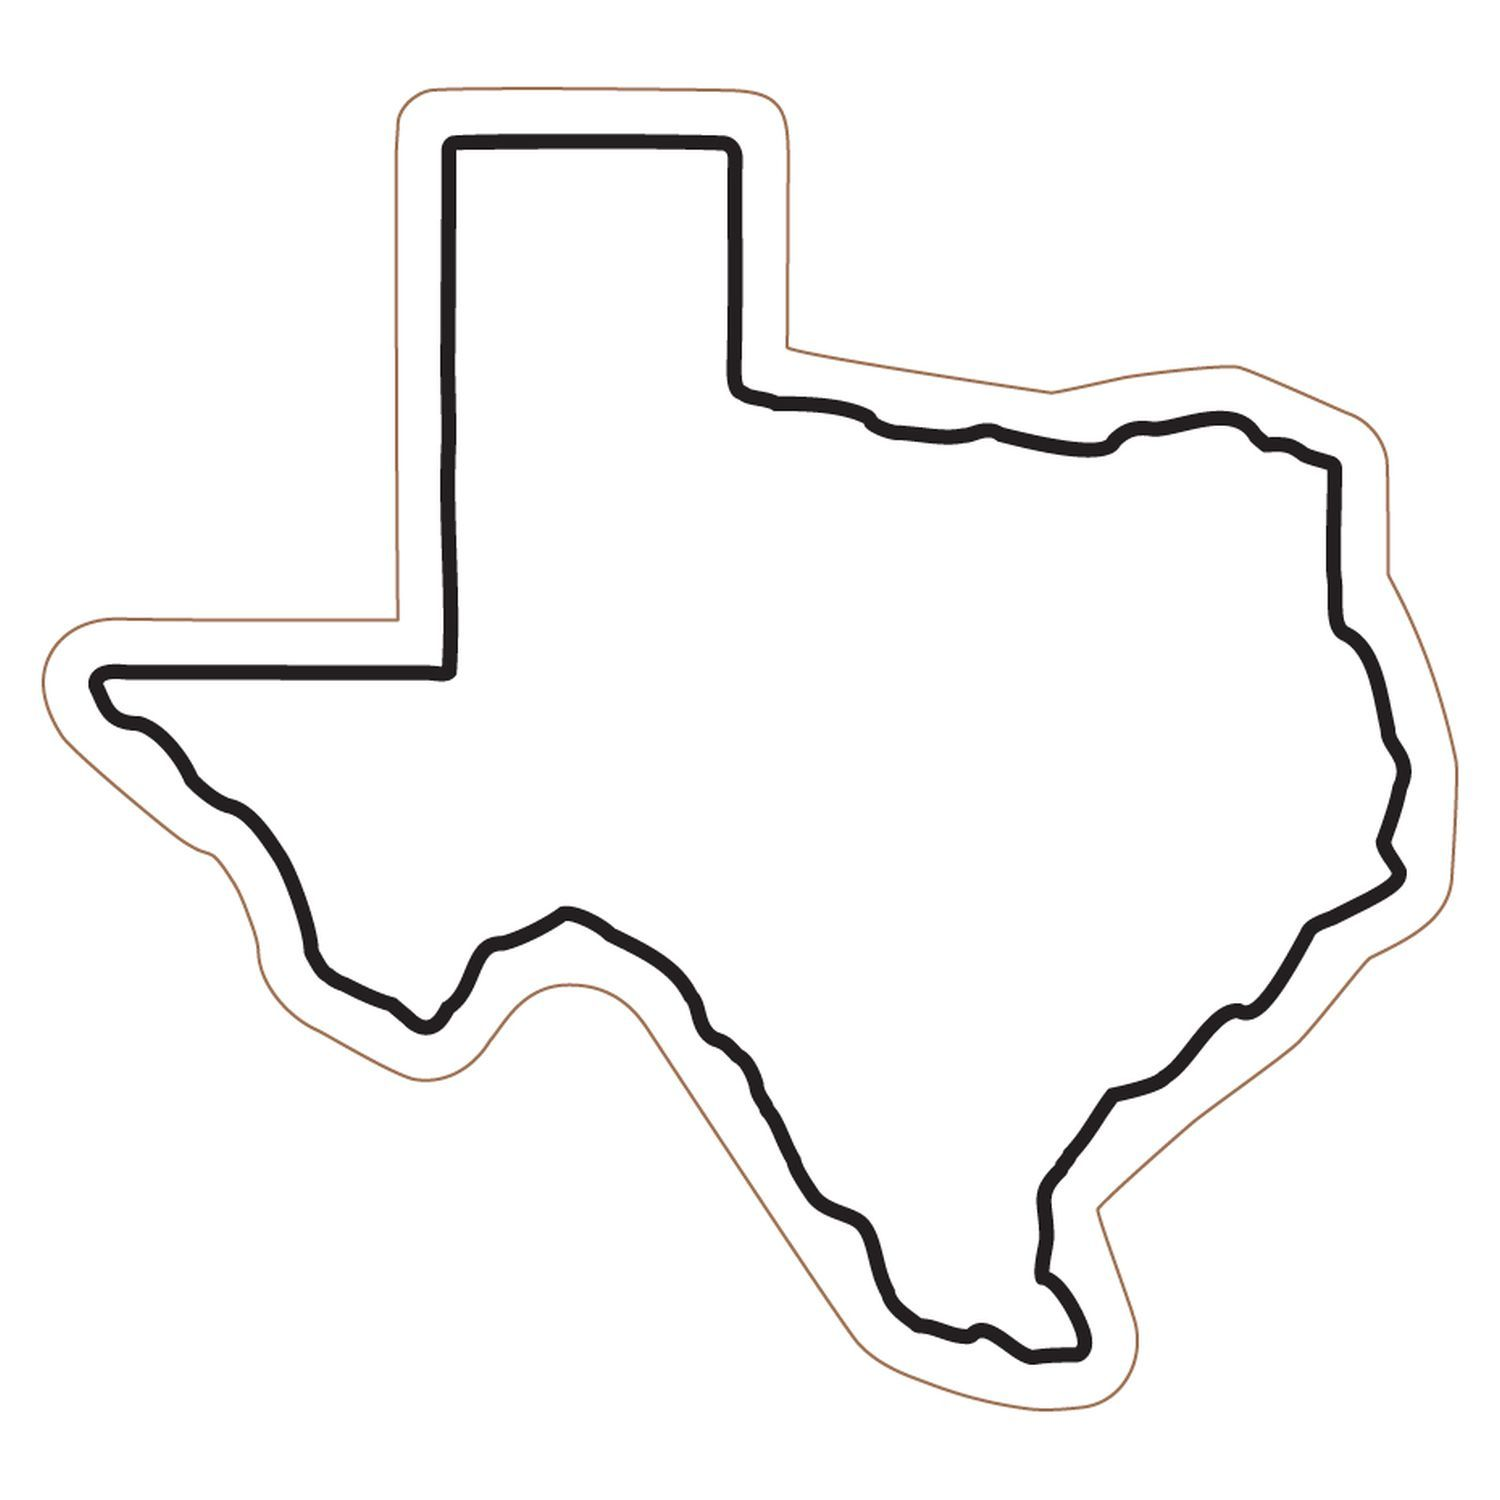 clipart free stock Outline of free download. Texas shape clipart